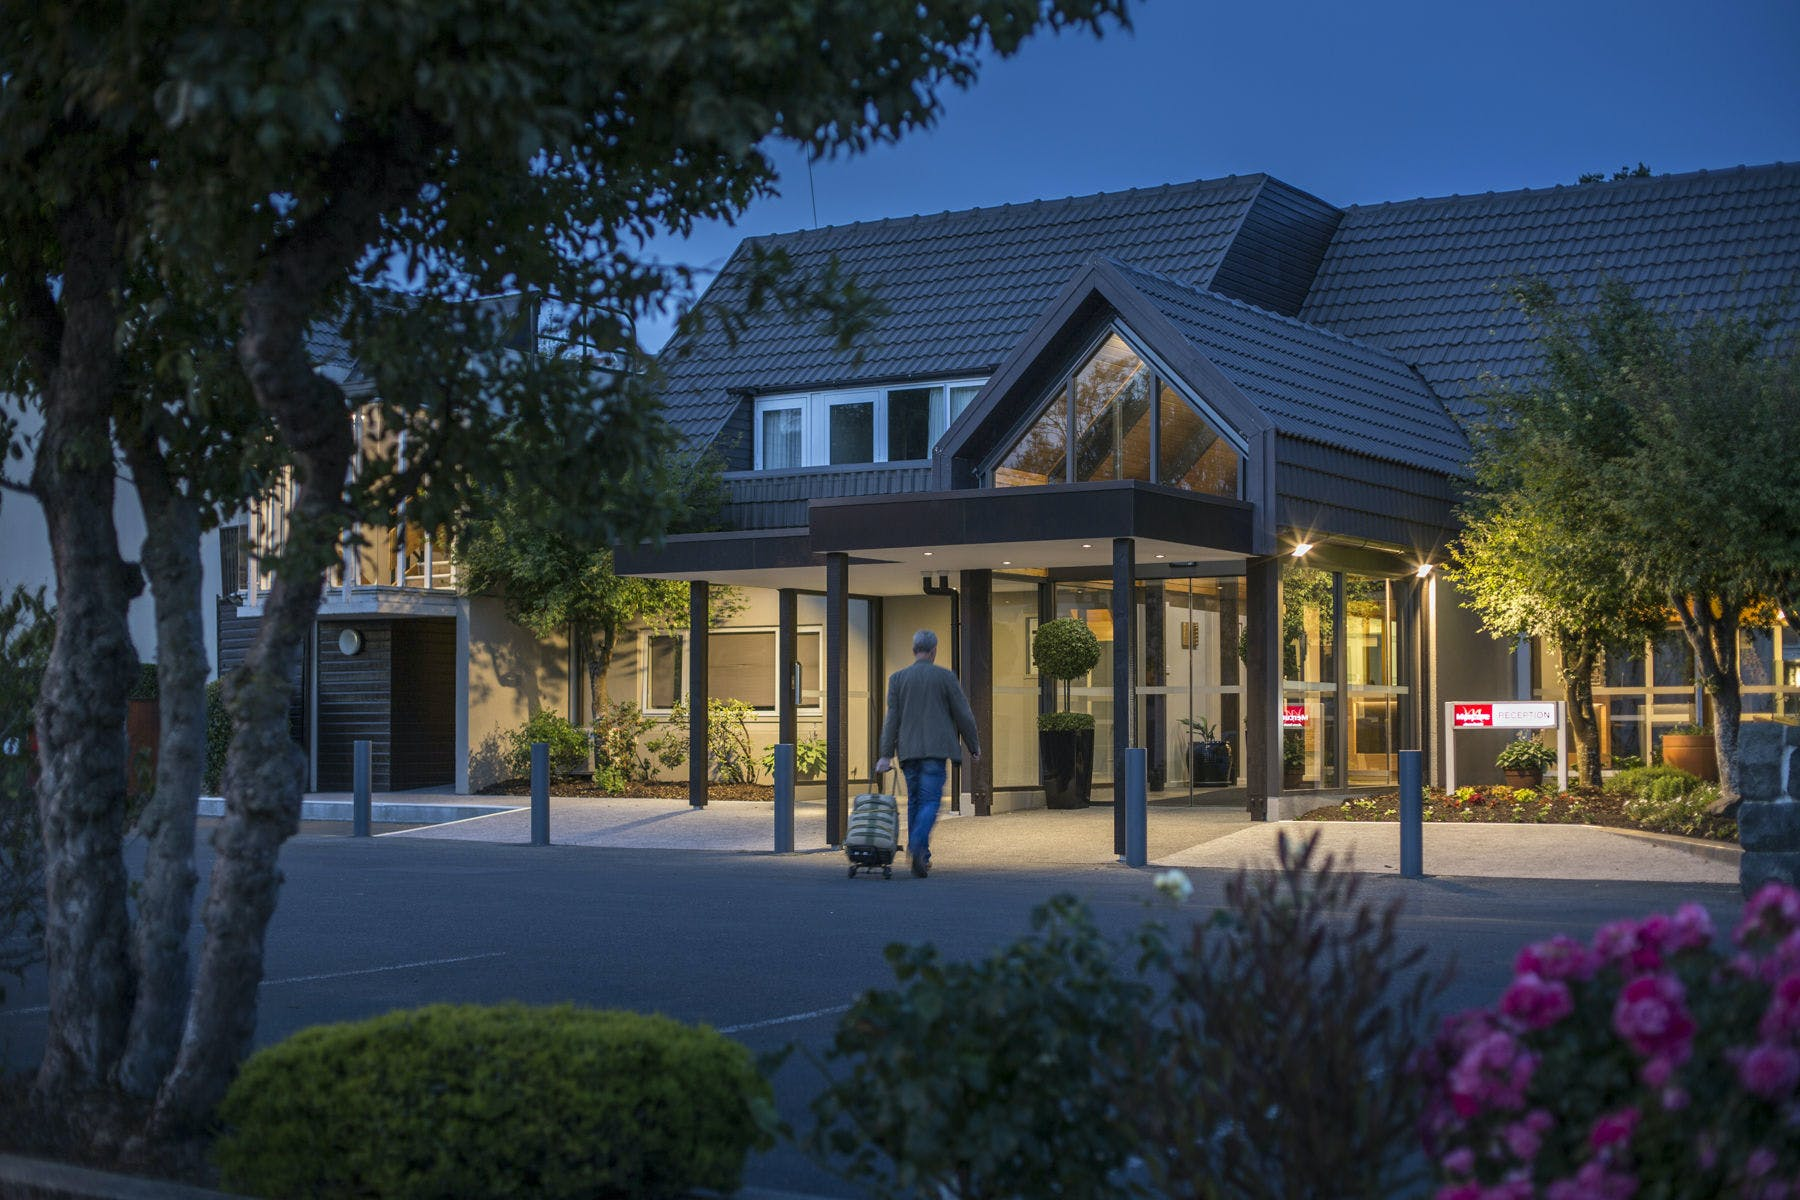 Dunedin Leisure Lodge Corporate Club - Night Entrance